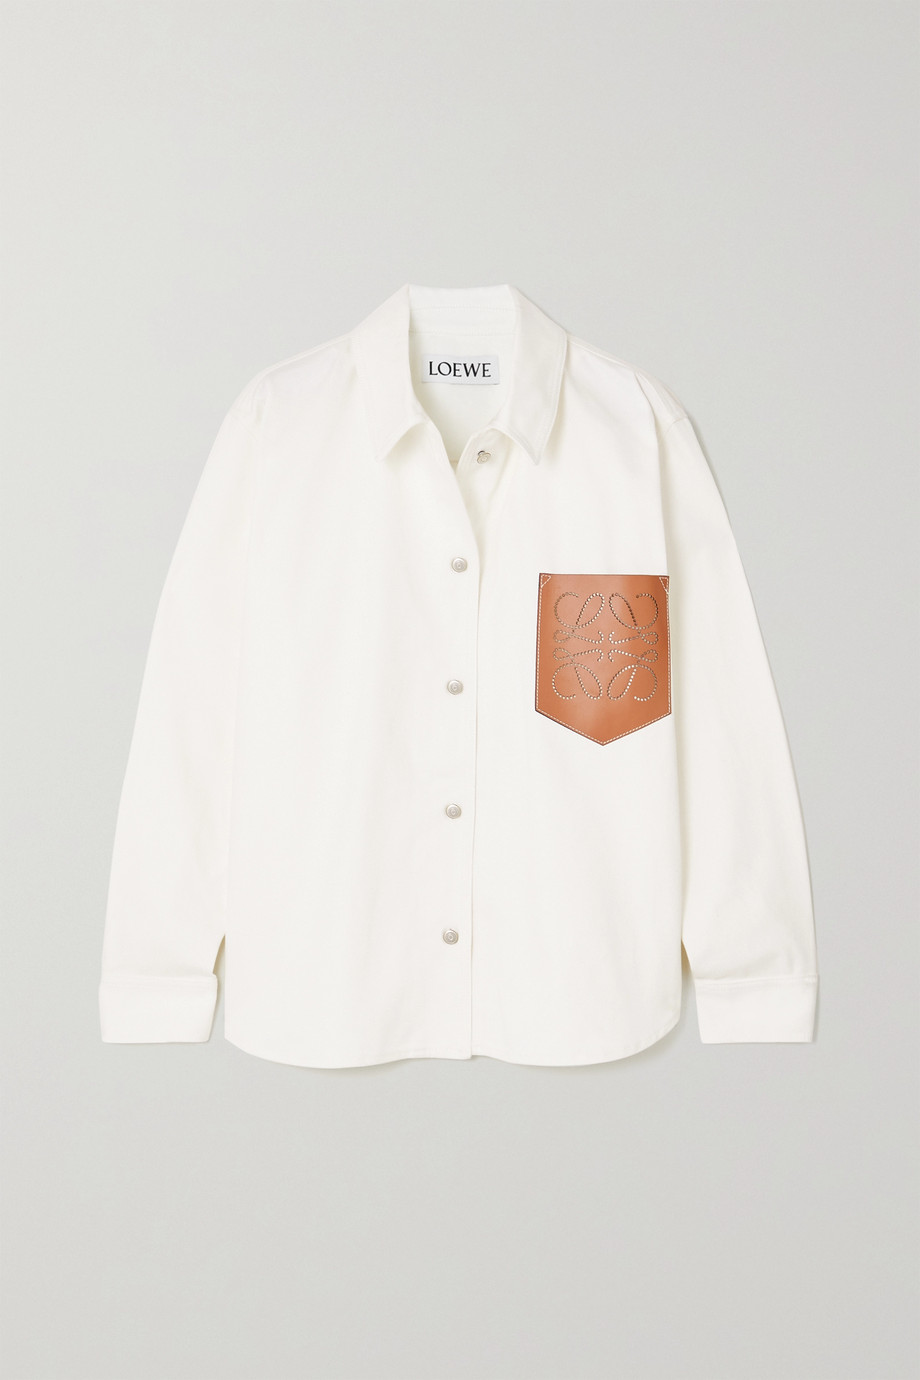 Loewe Perforated leather-trimmed denim shirt